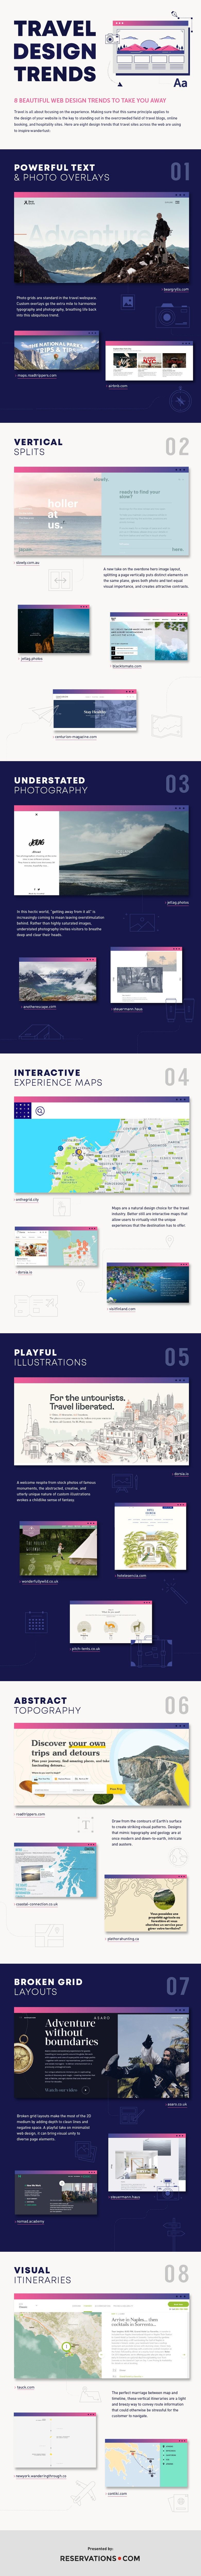 Evolution of Travel Web Design: 8 Latest Trends for 2019 - Infographic